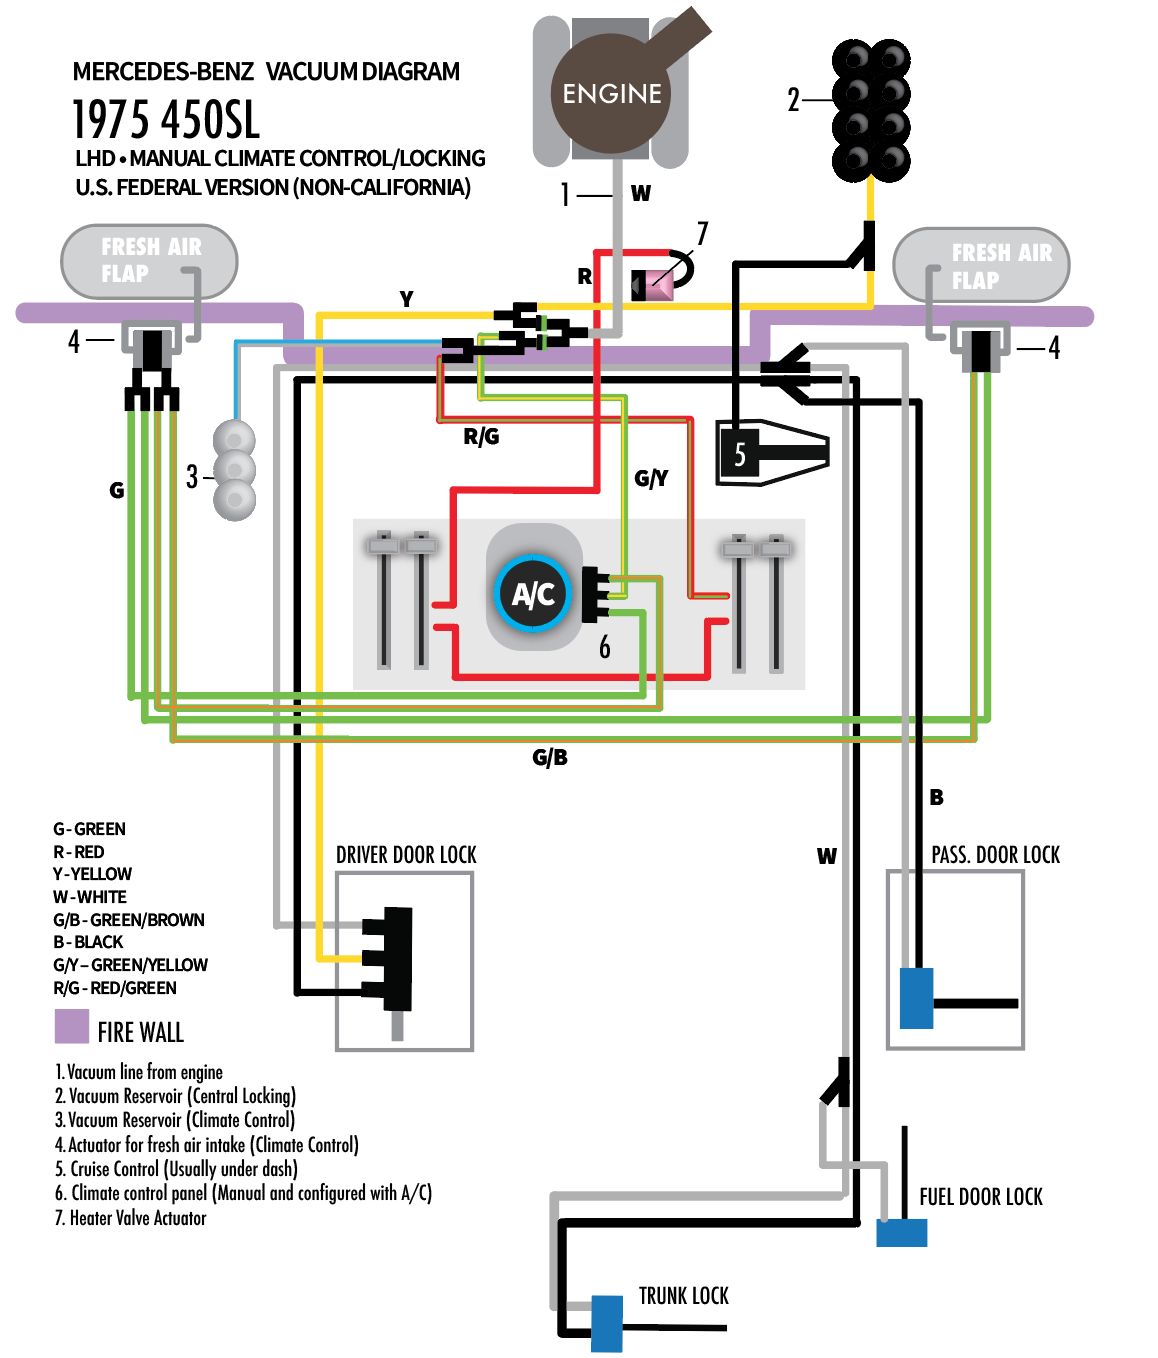 small resolution of mercedes benz fuel pressure diagram wiring diagram compilation 1985 mercedes benz fuel system diagram wiring diagram